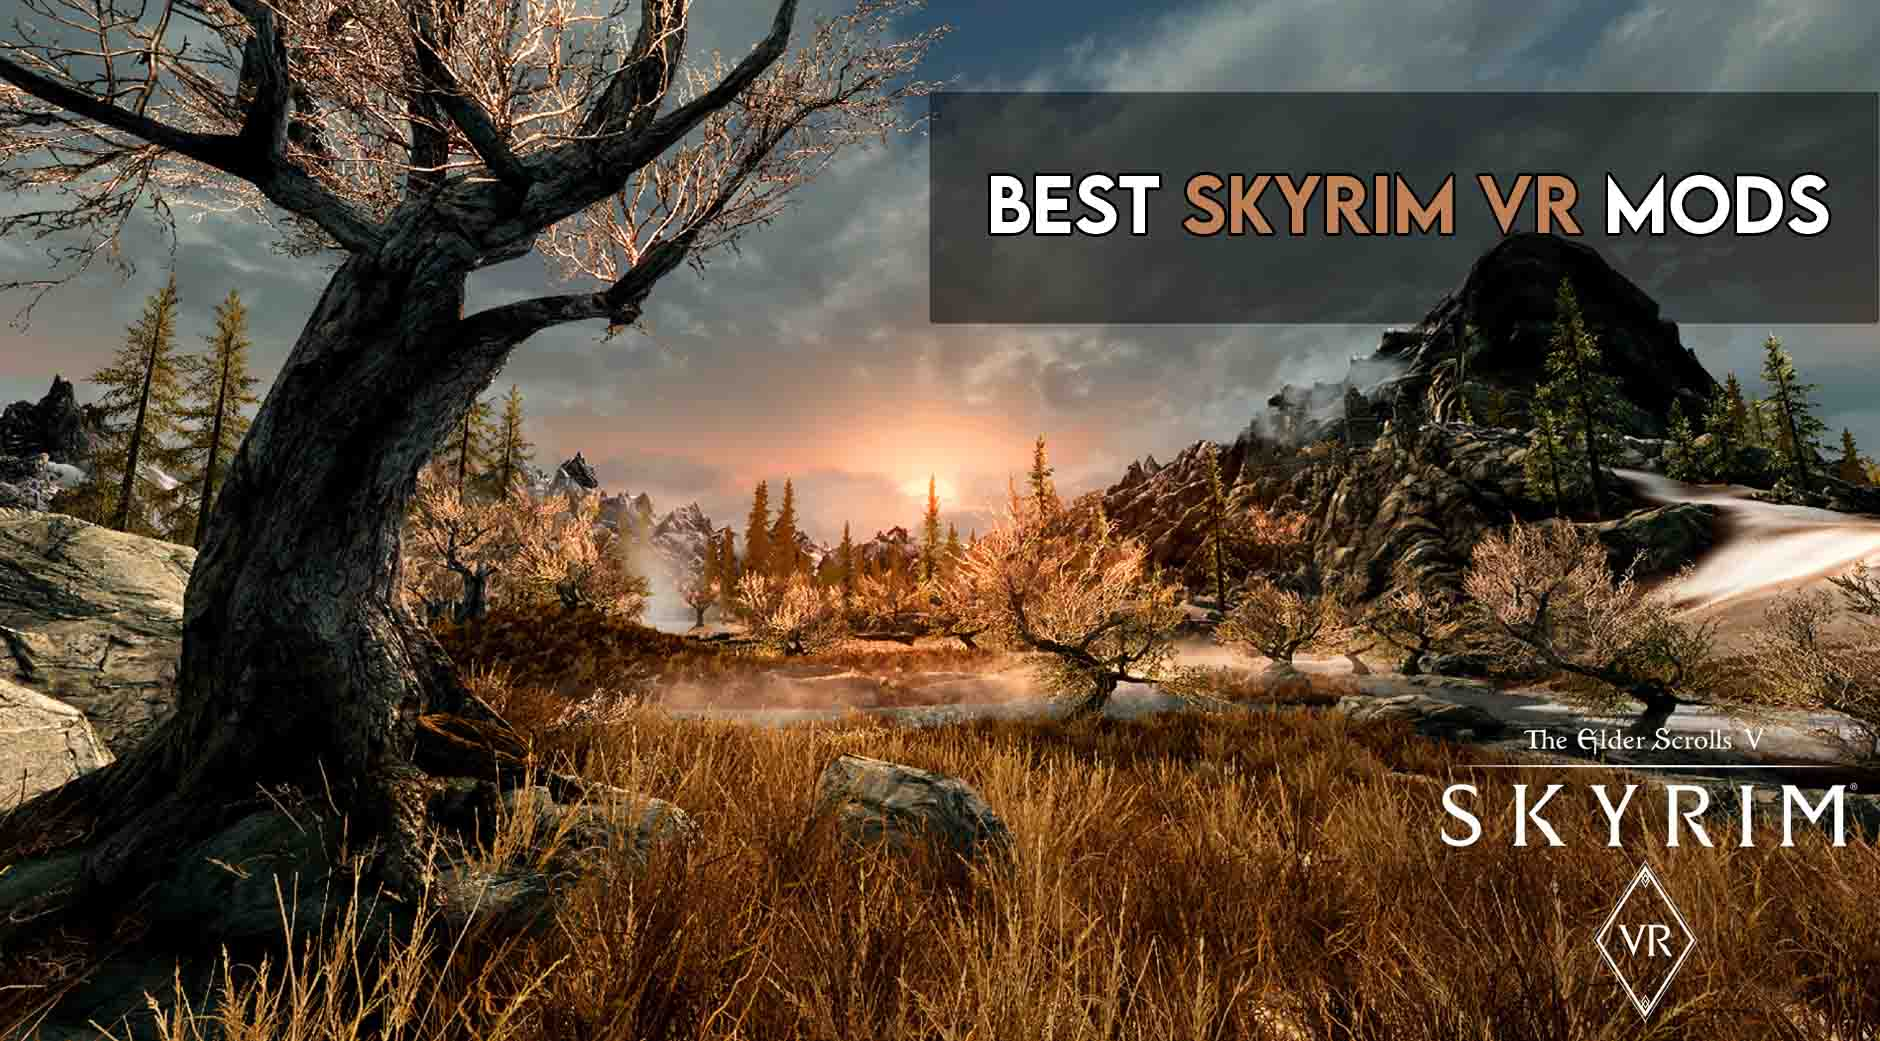 6 Best Skyrim VR Mods in 2021